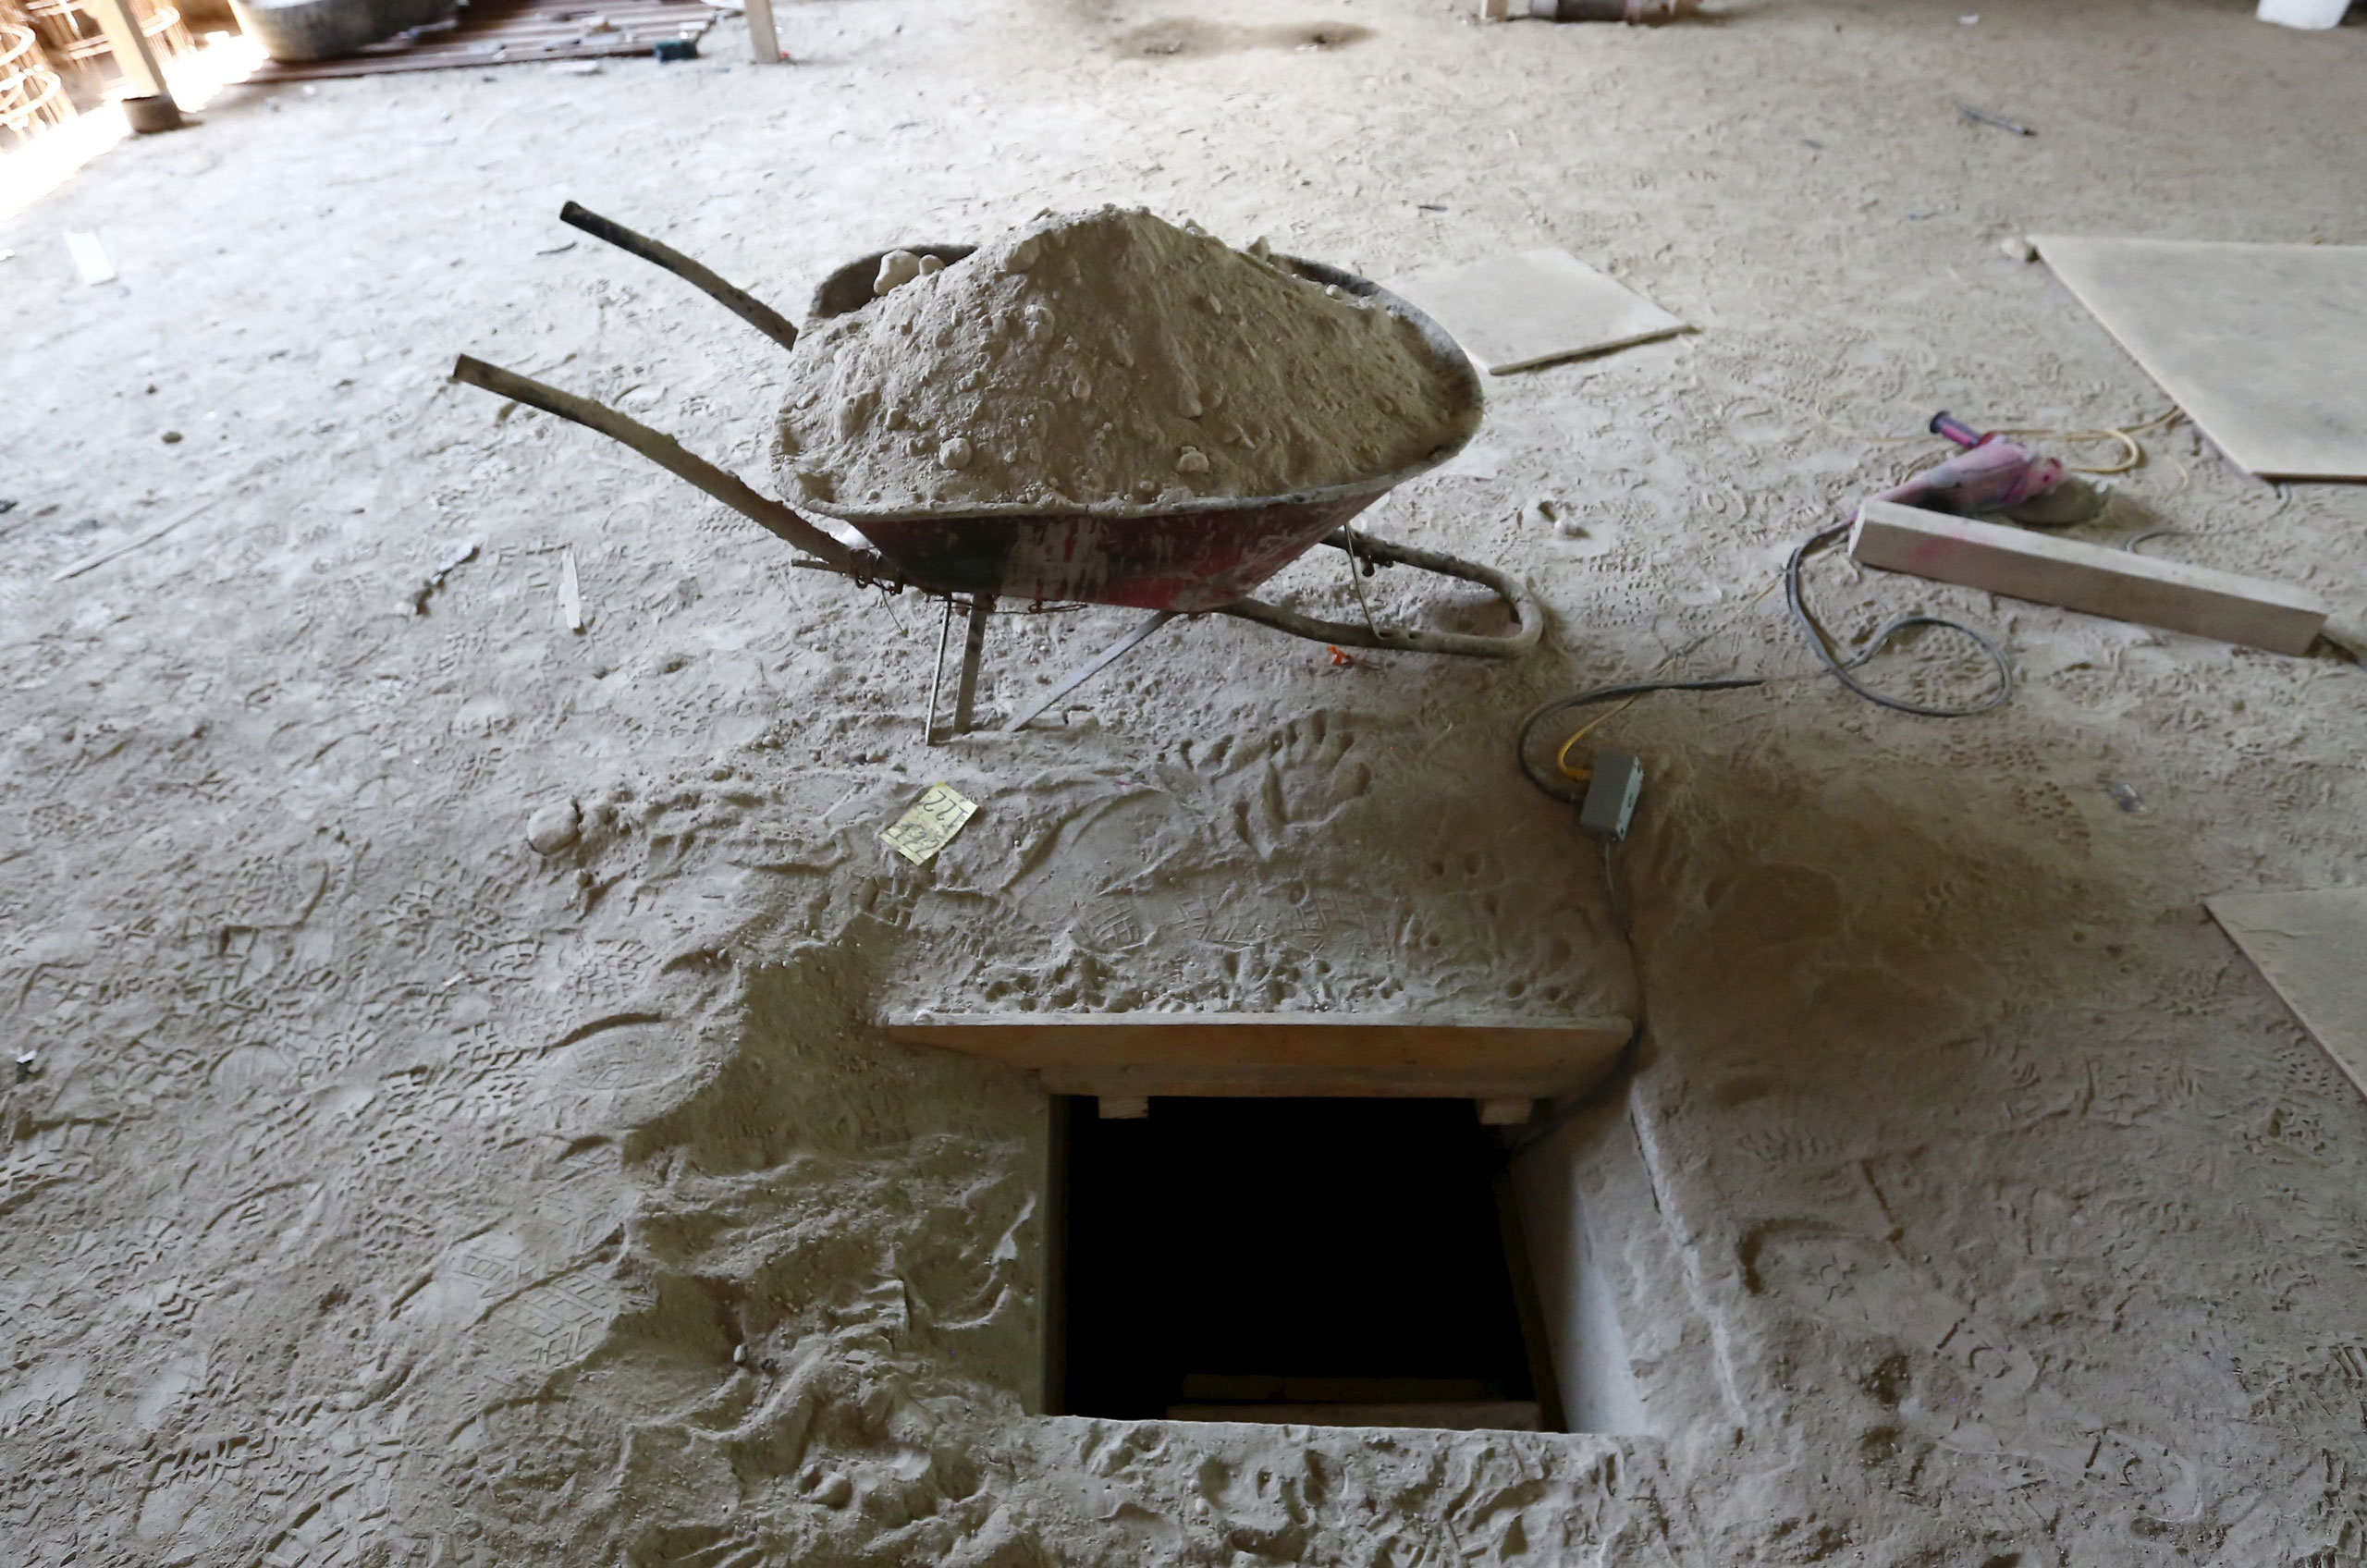 The entrance of a tunnel connected to the Altiplano Federal Penitentiary and used by drug lord Joaquin 'El Chapo' Guzman to escape, is seen in Almoloya de Juarez, Mexico, on July 15, 2015.